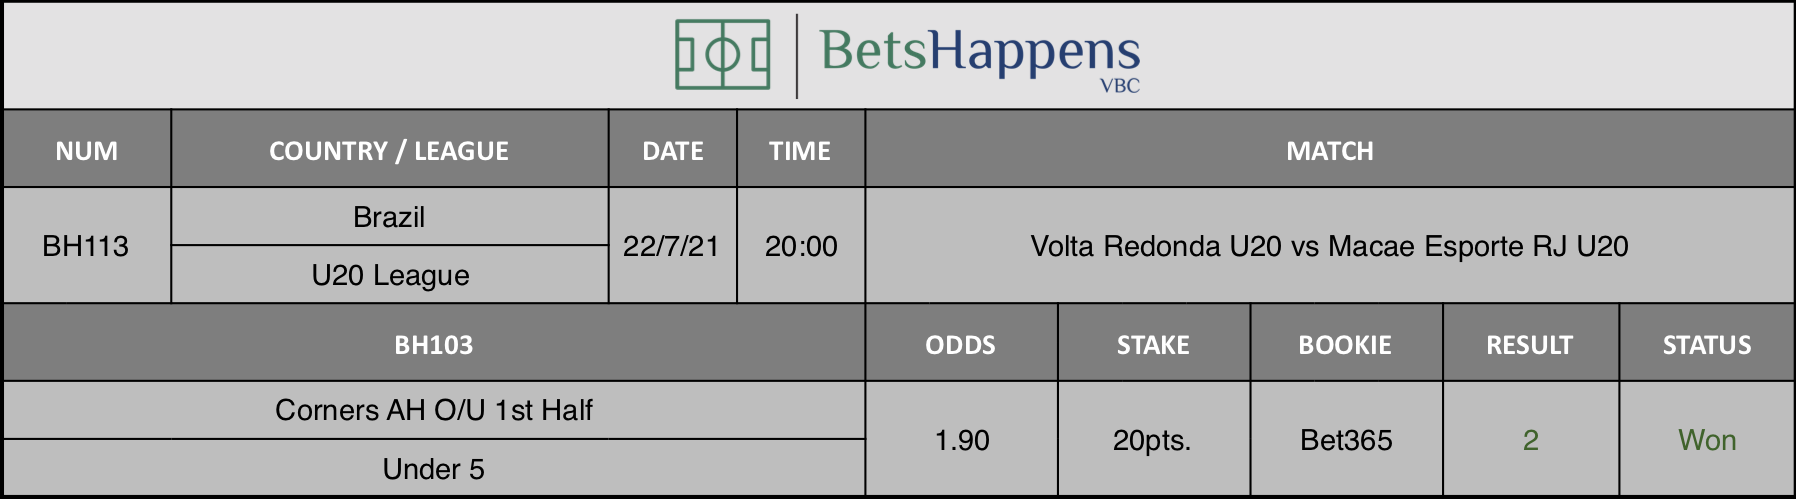 Results of our advice for the Volta Redonda U20 vs Macae Esporte RJ U20 match in which Corners AH O/U 1st Half Under 5 is recommended.